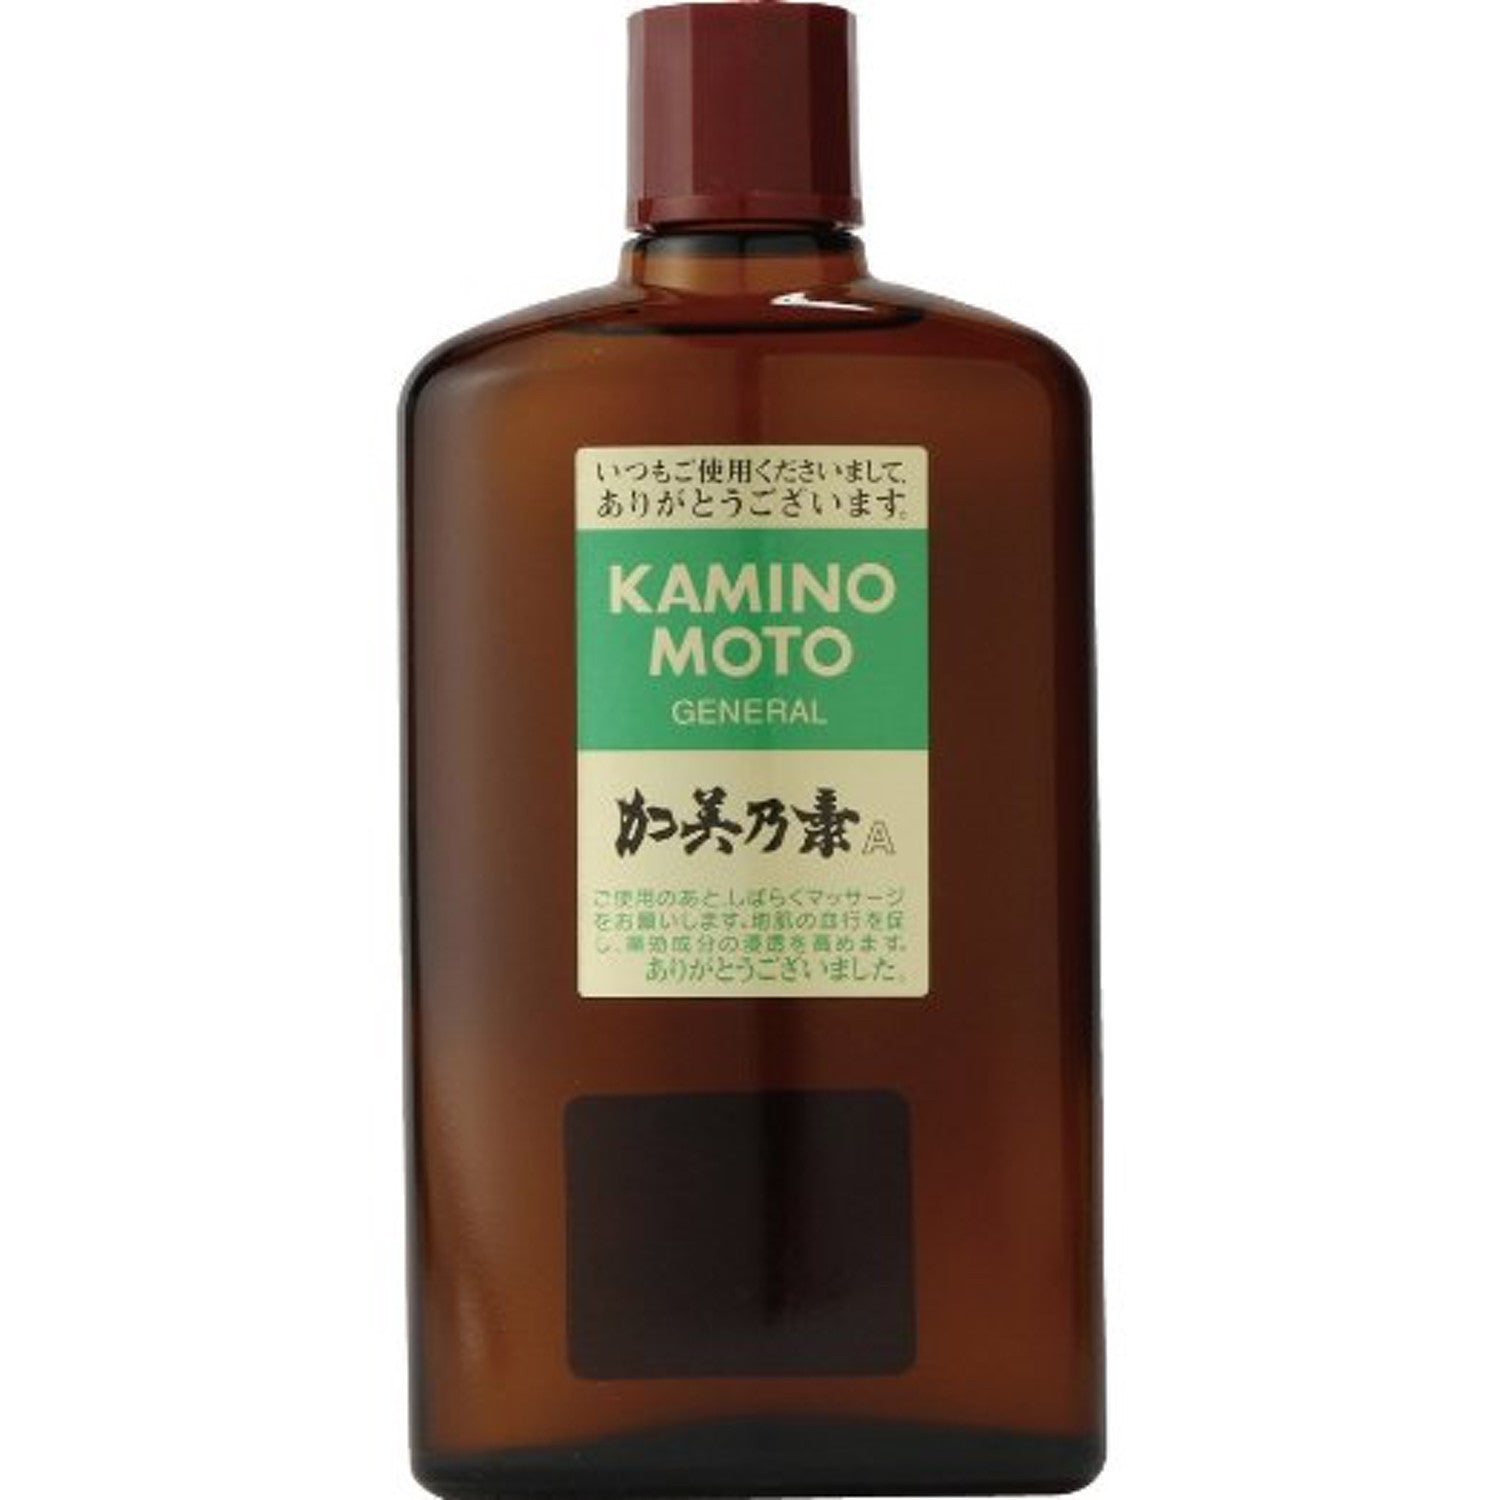 KAMINOMOTO Hair Regrowth Treatment KAMINOMOTO A 200ml